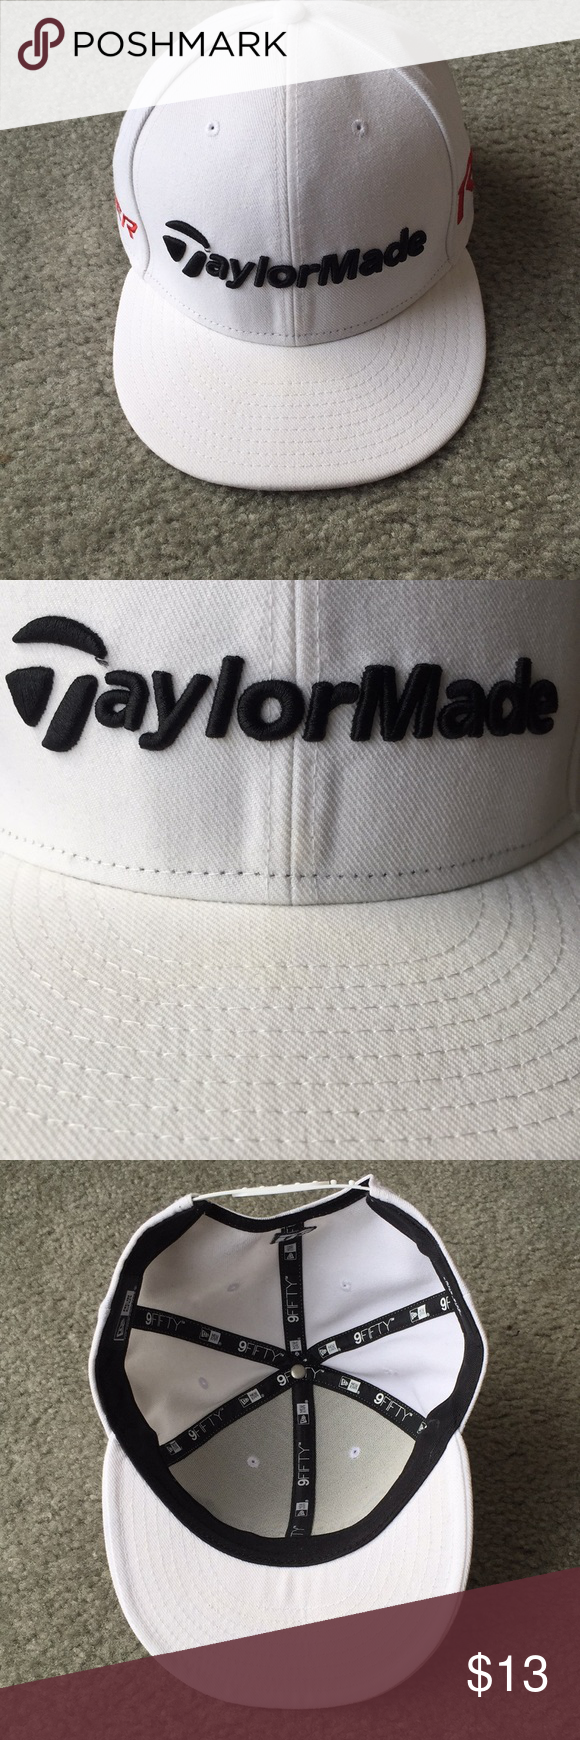 15a01af3c3968 Taylormade Burner   R15 Flat bill Hat EUC Taylormade Hat New Era brand  Adjustable 3 spots